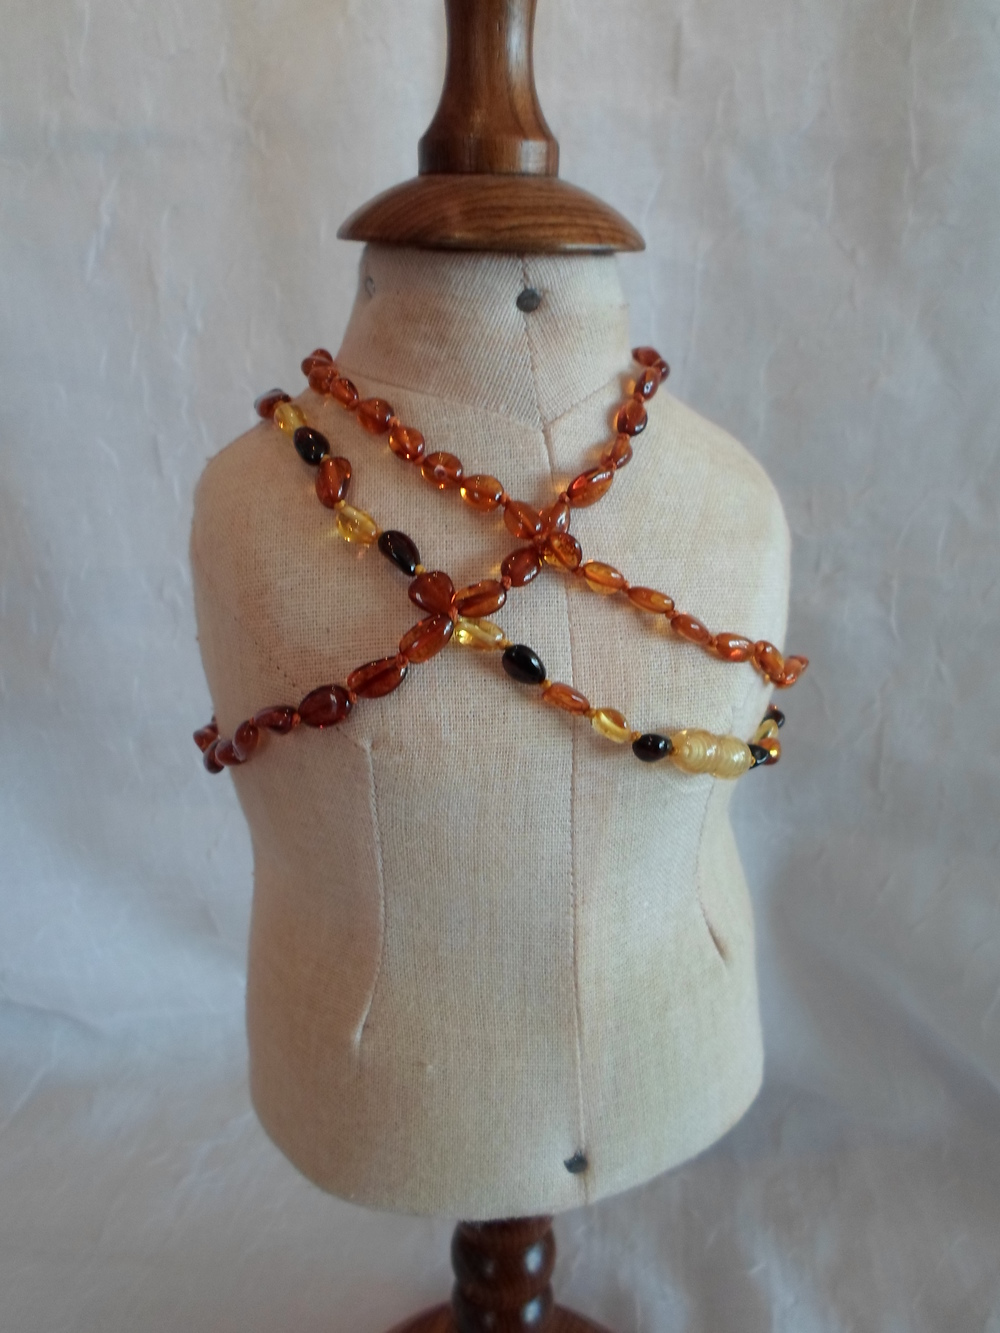 Baltic Amber Teething Necklace for Baby $23.00 Wants 1 purchased